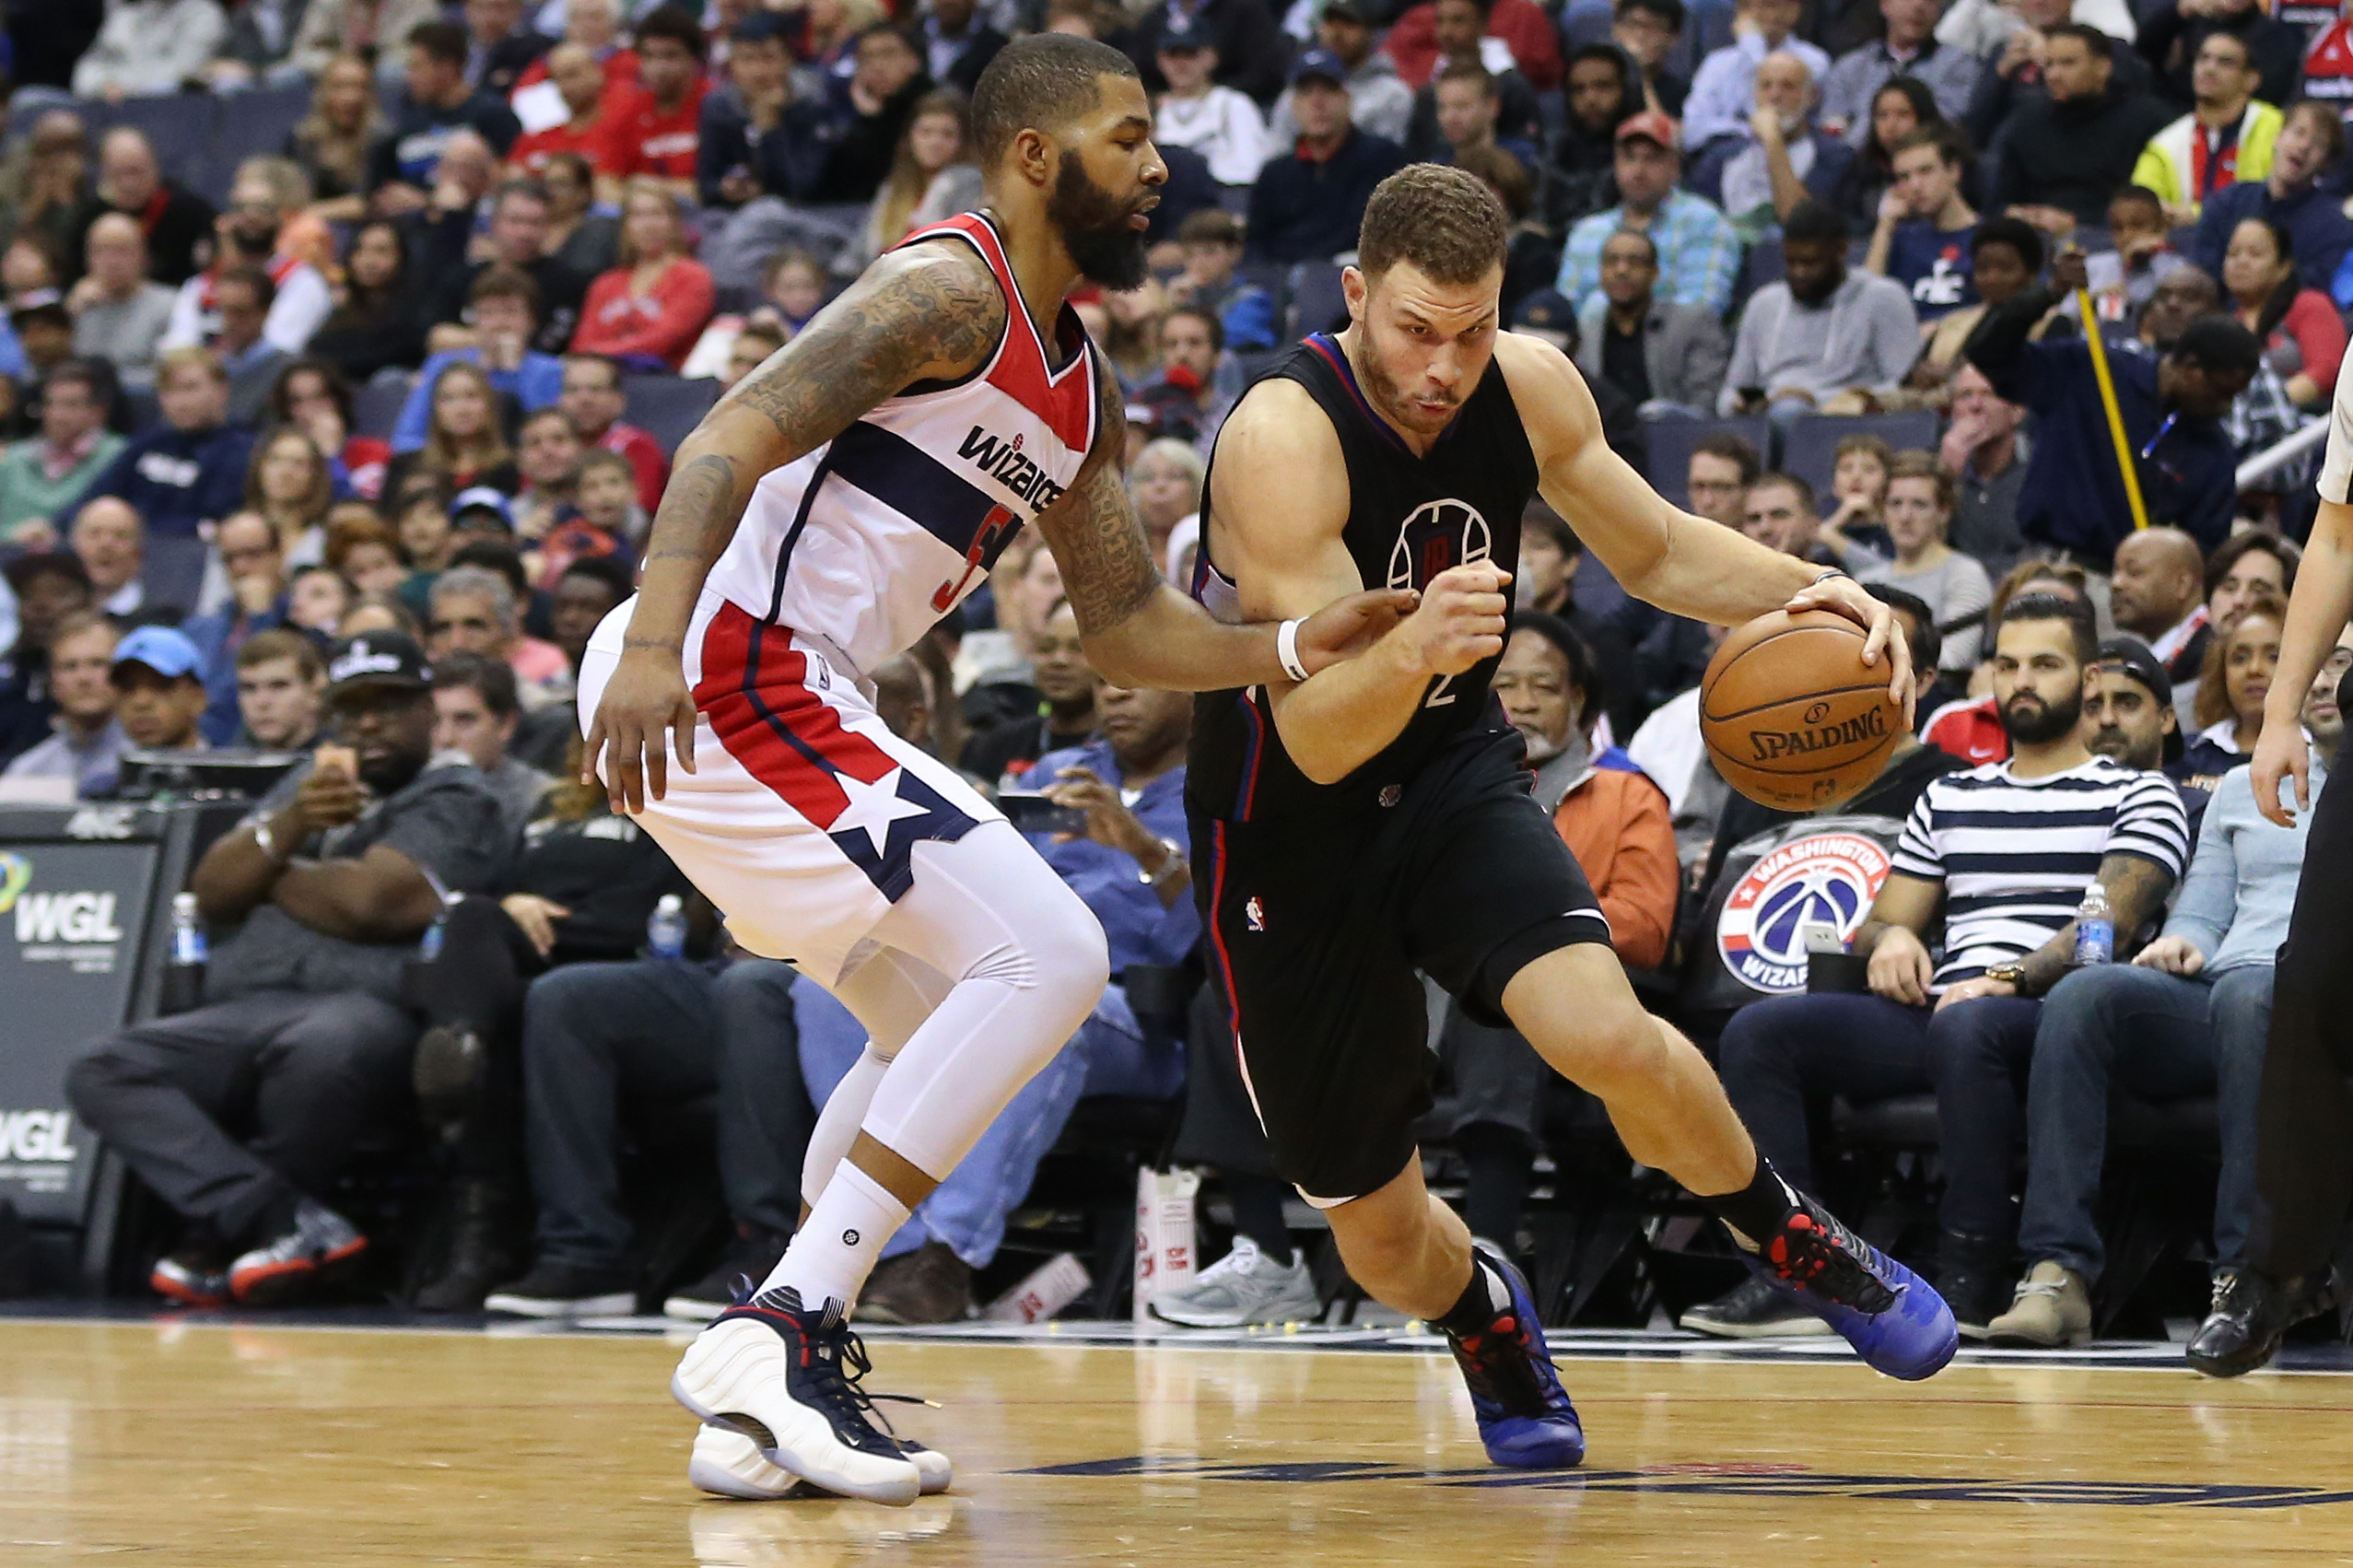 9755505-nba-los-angeles-clippers-at-washington-wizards